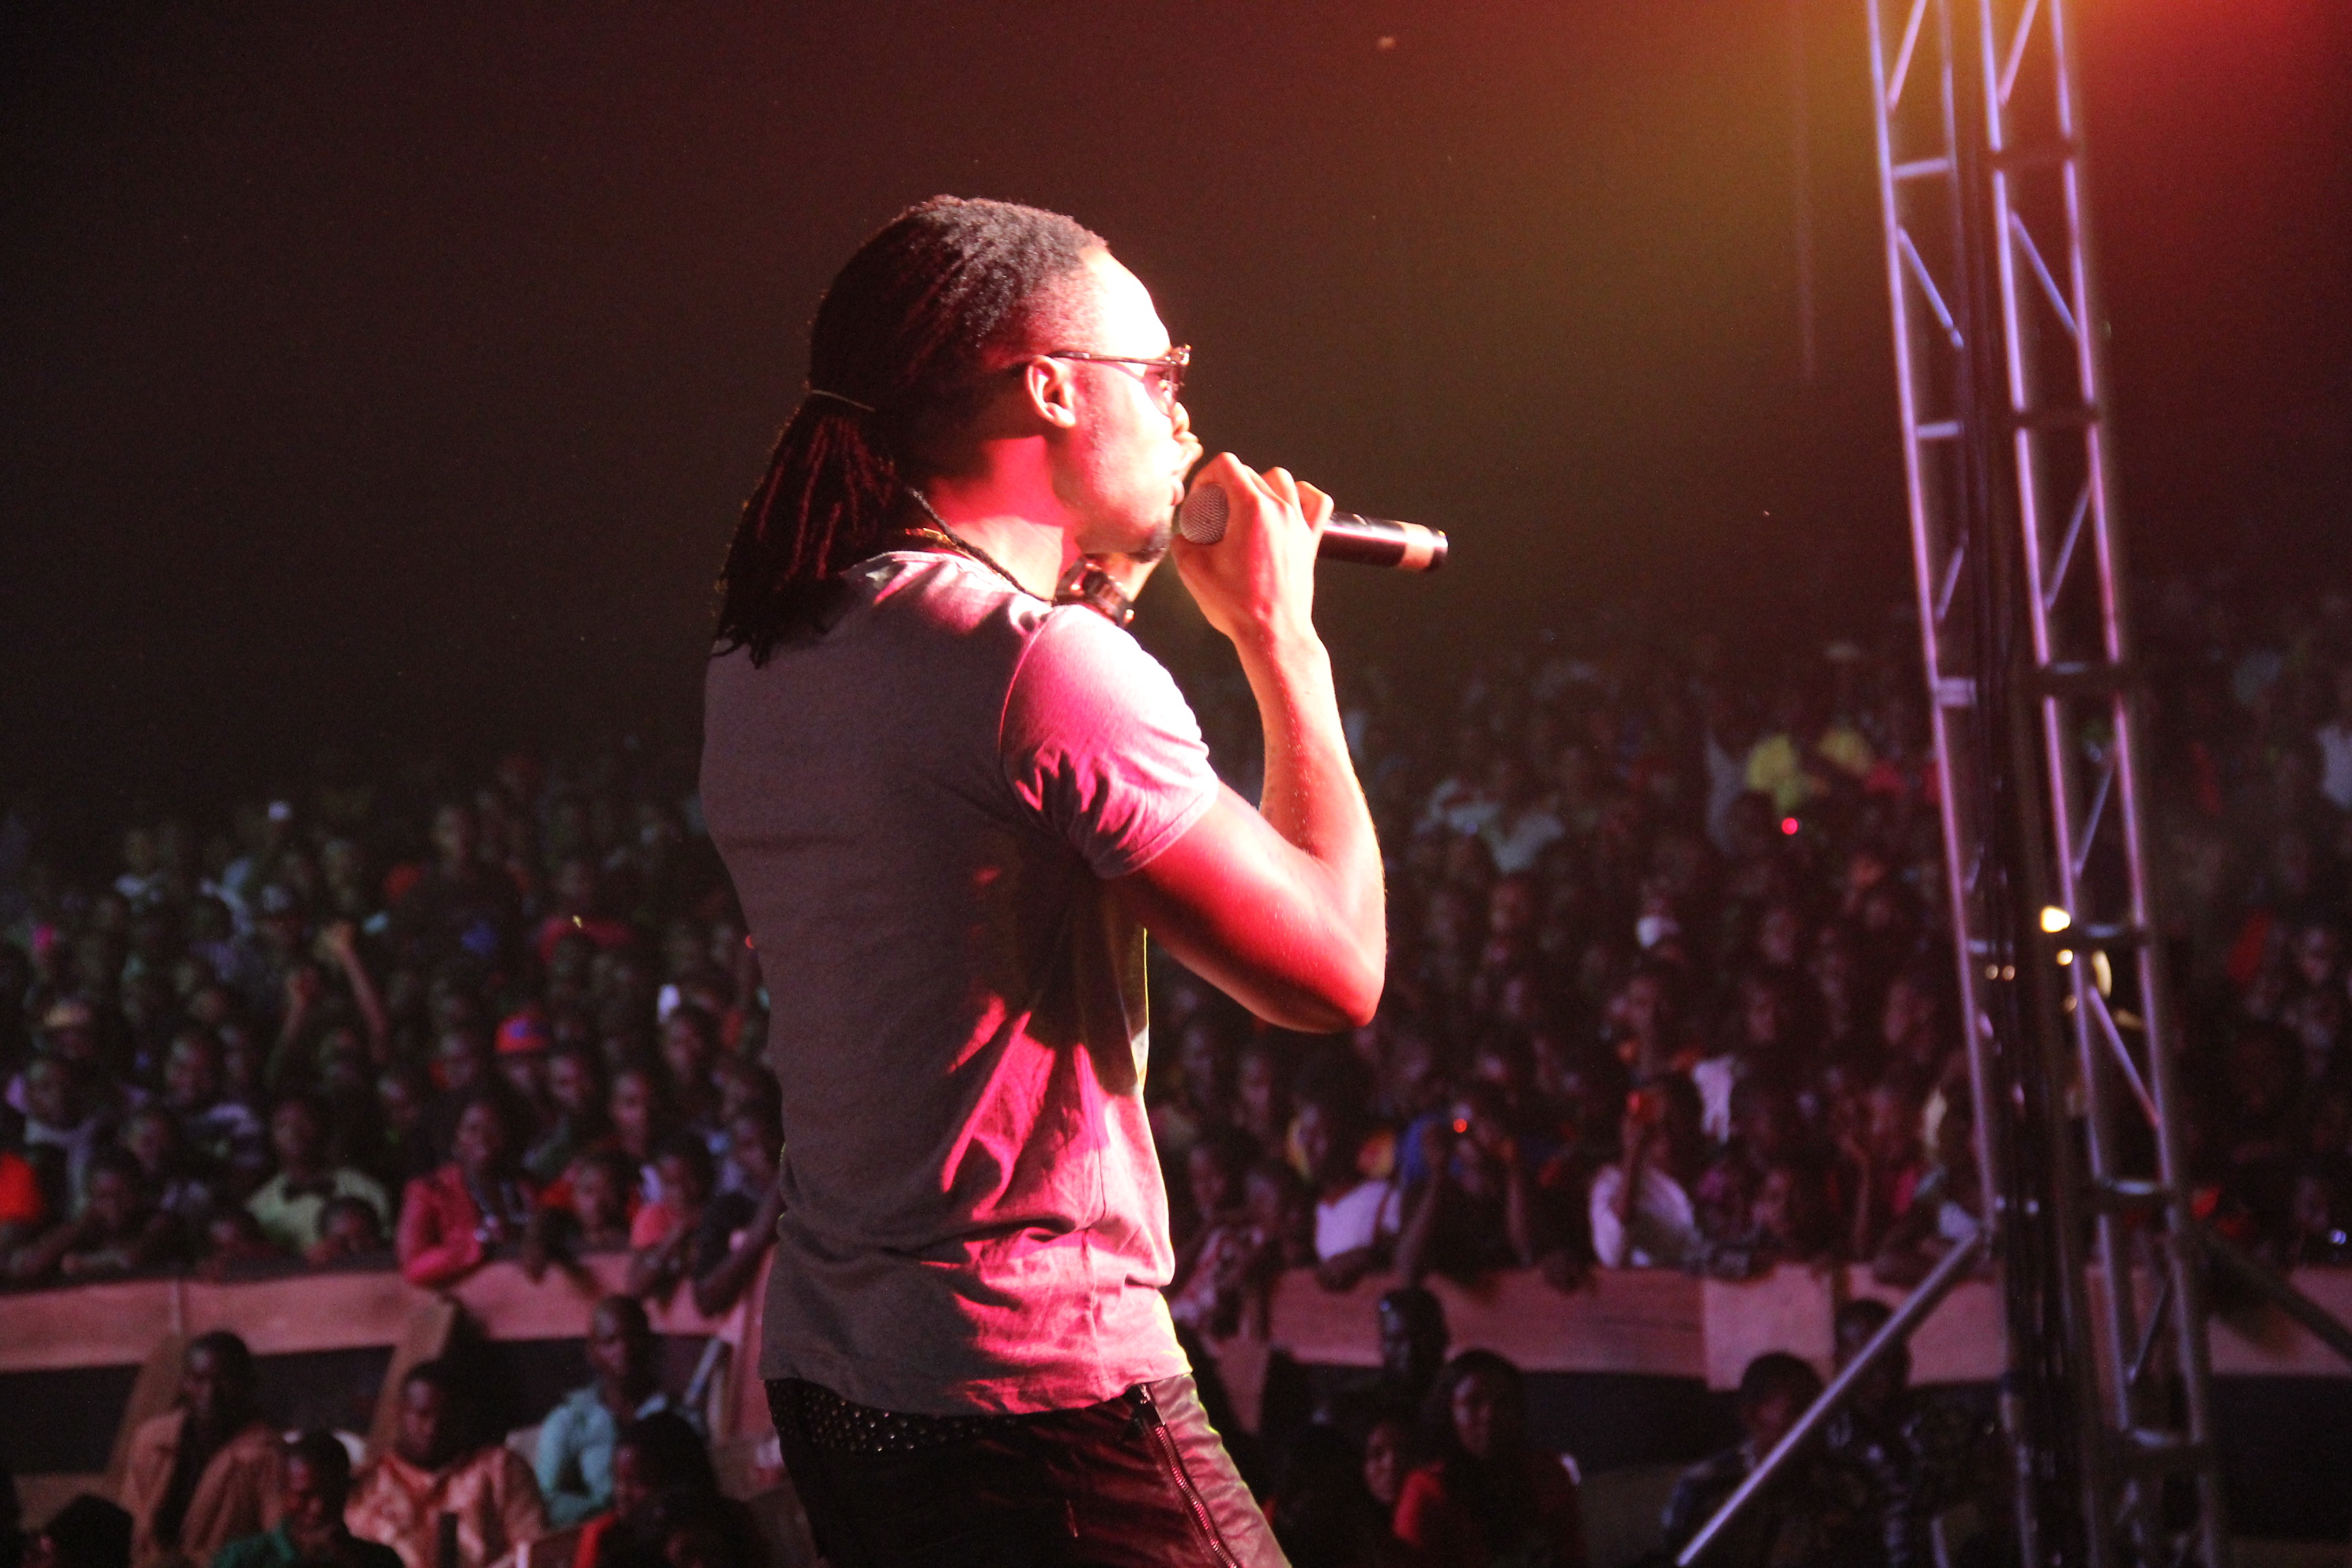 Flavour performing Adamma on stage